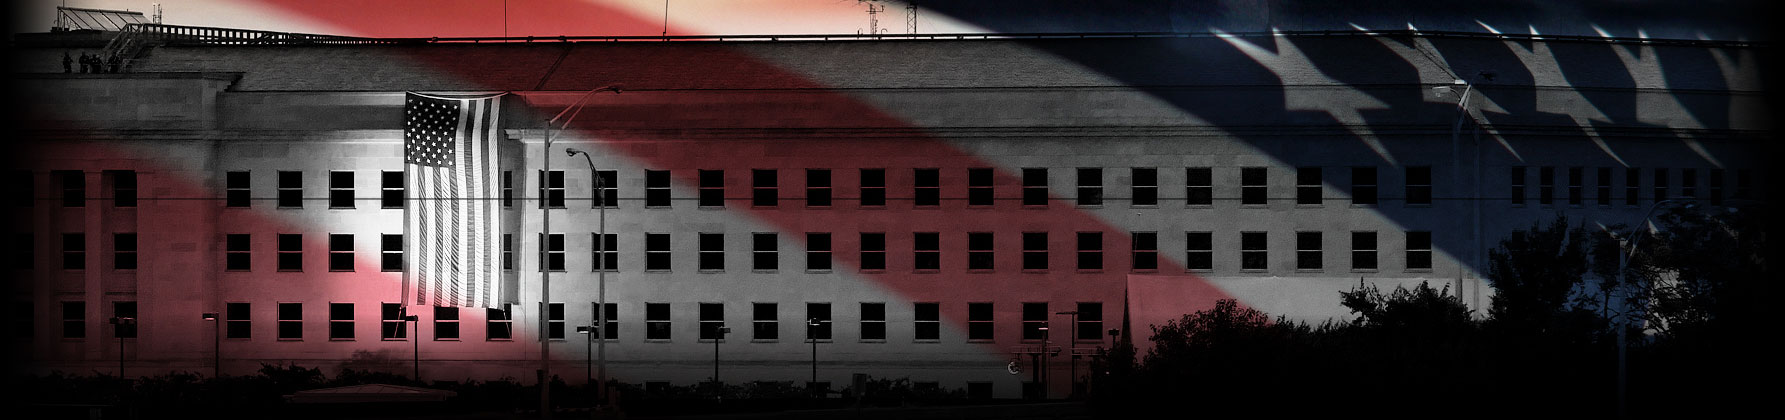 a photograph of the Pentagon, overlaid with the American flag